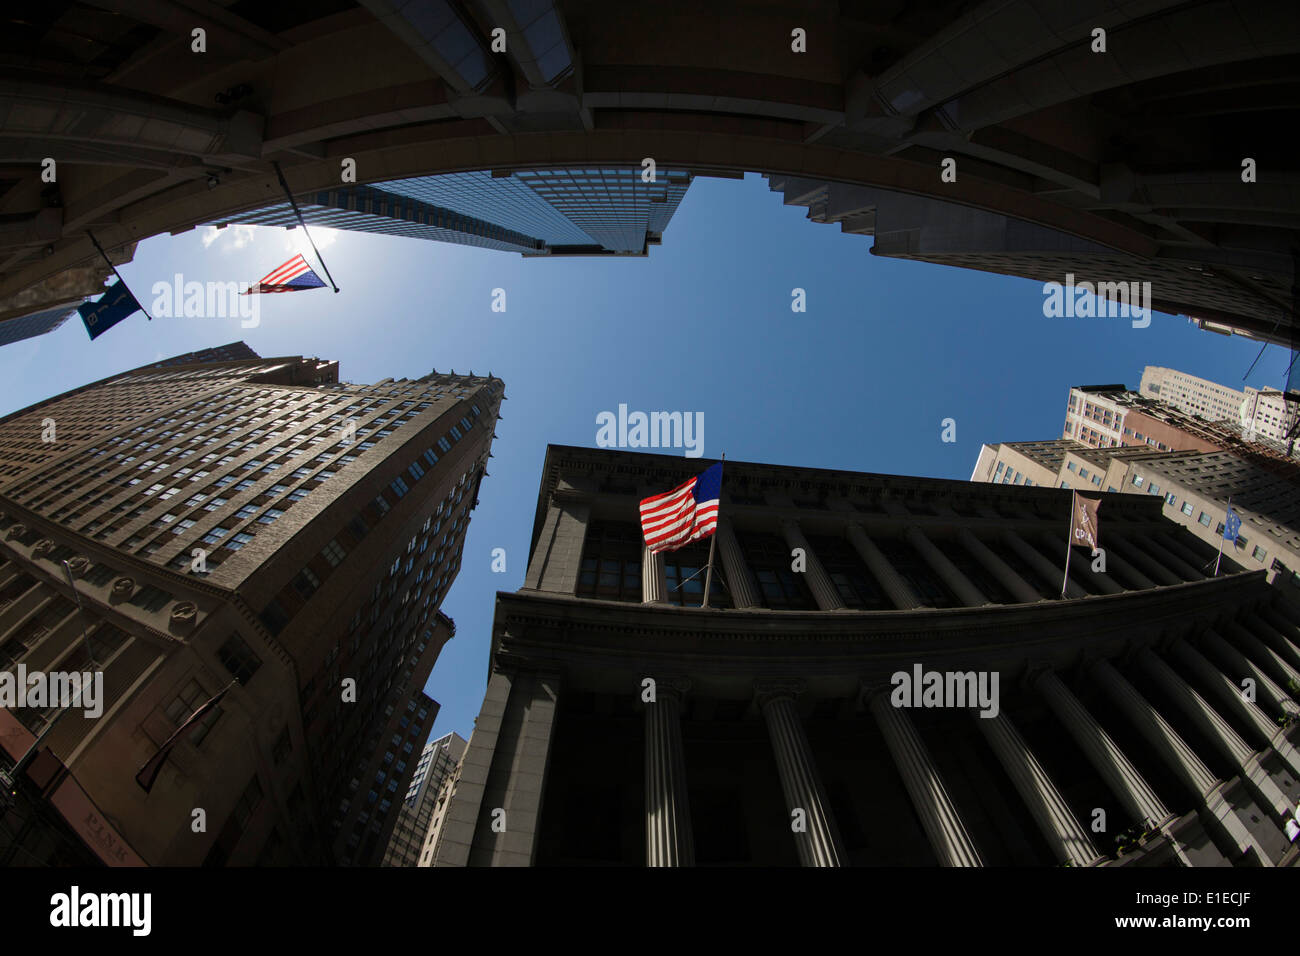 Tall view of banking and financial institutions on Wall Street, Lower Manhattan, New York City. - Stock Image